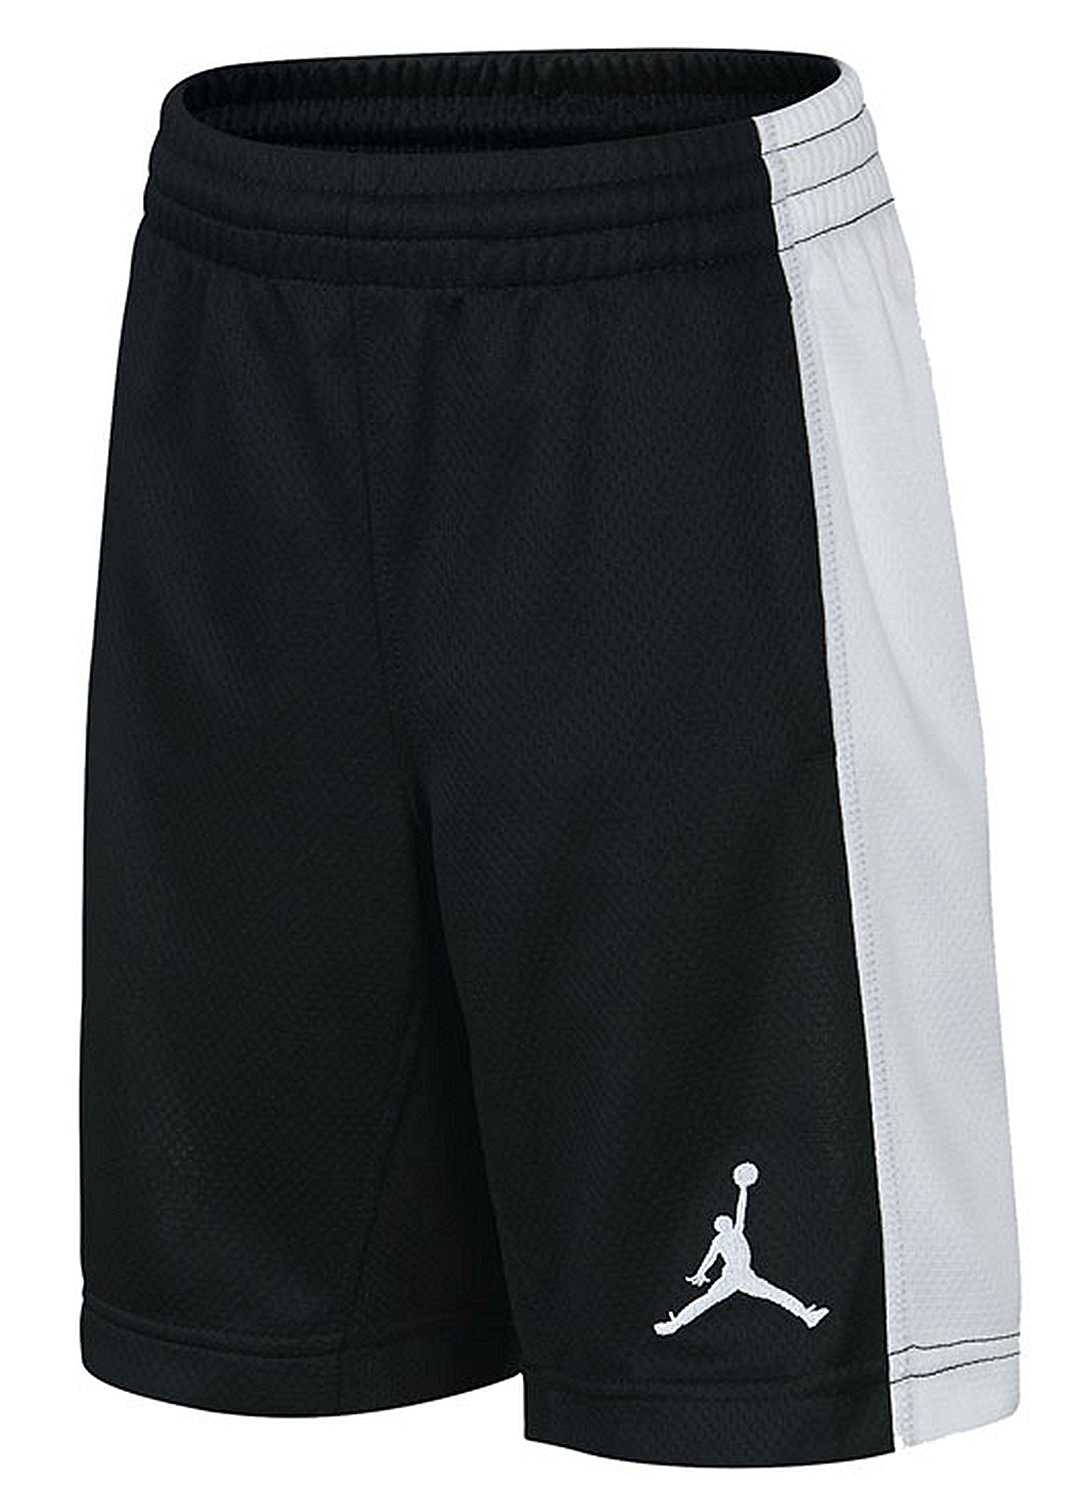 NIke Boys' Air Jordan Highlight Basketball Shorts